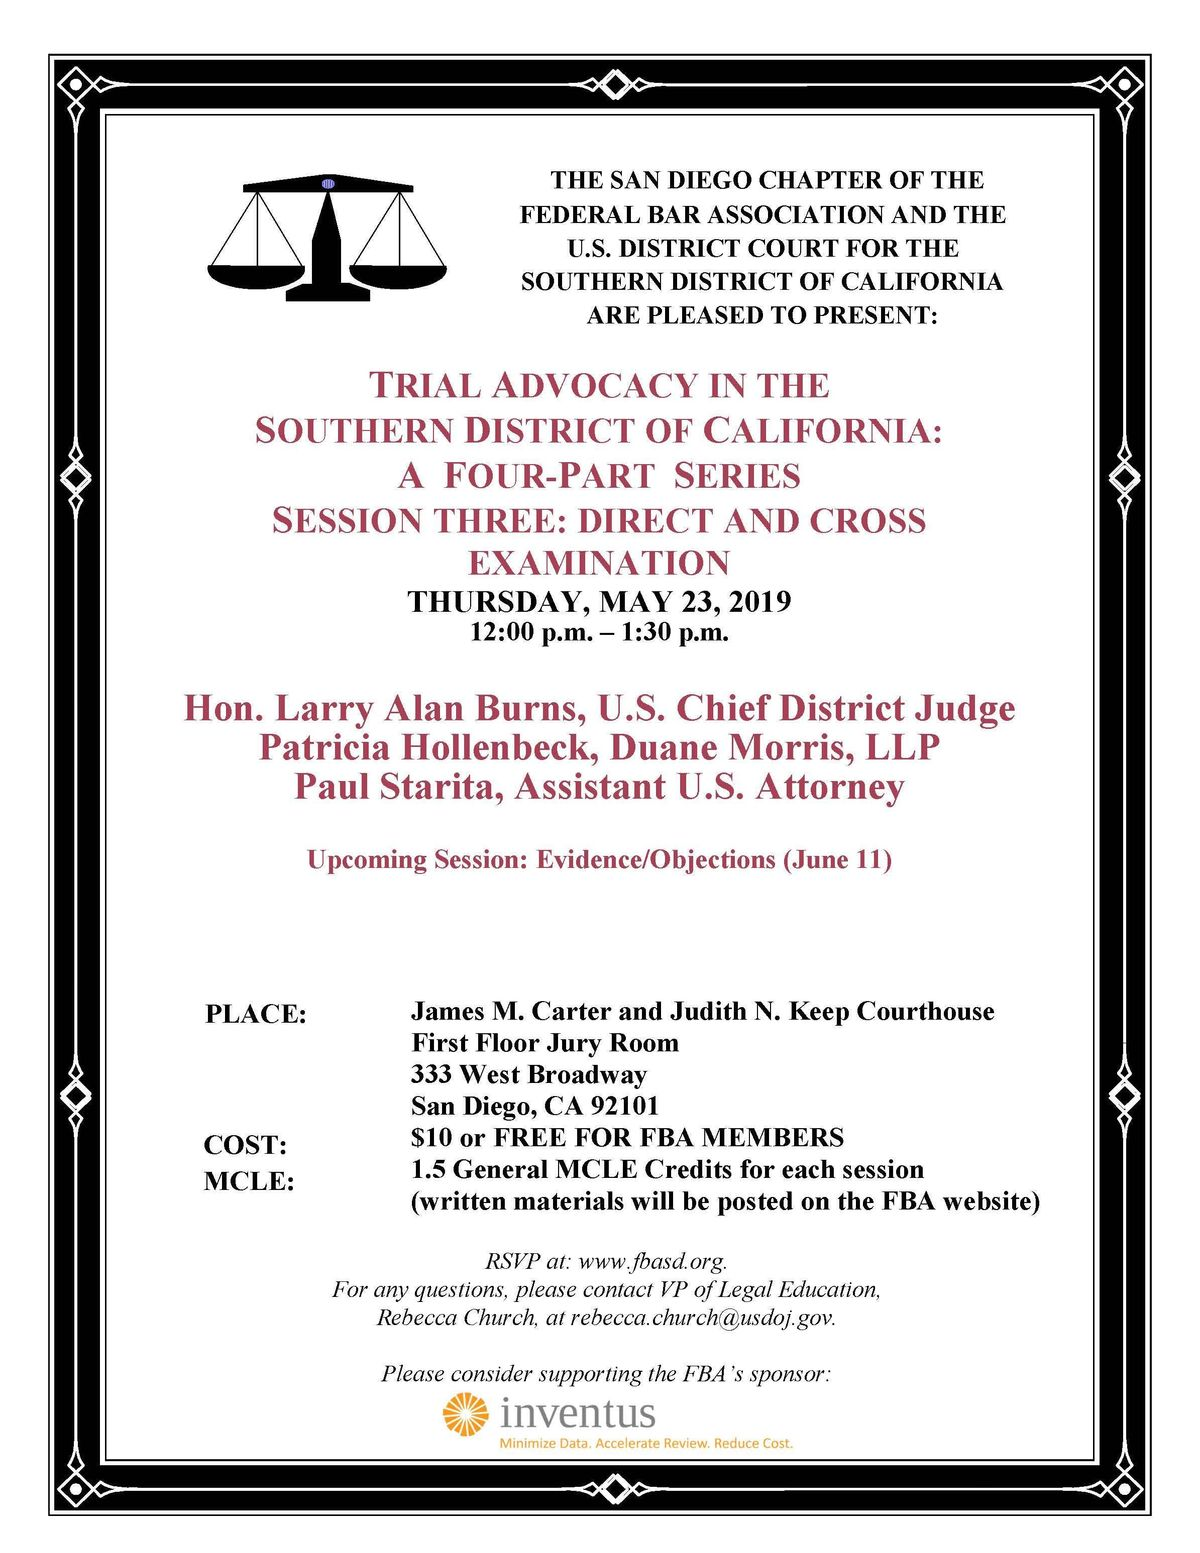 Trial Advocacy in the Southen District: Session Three Direct